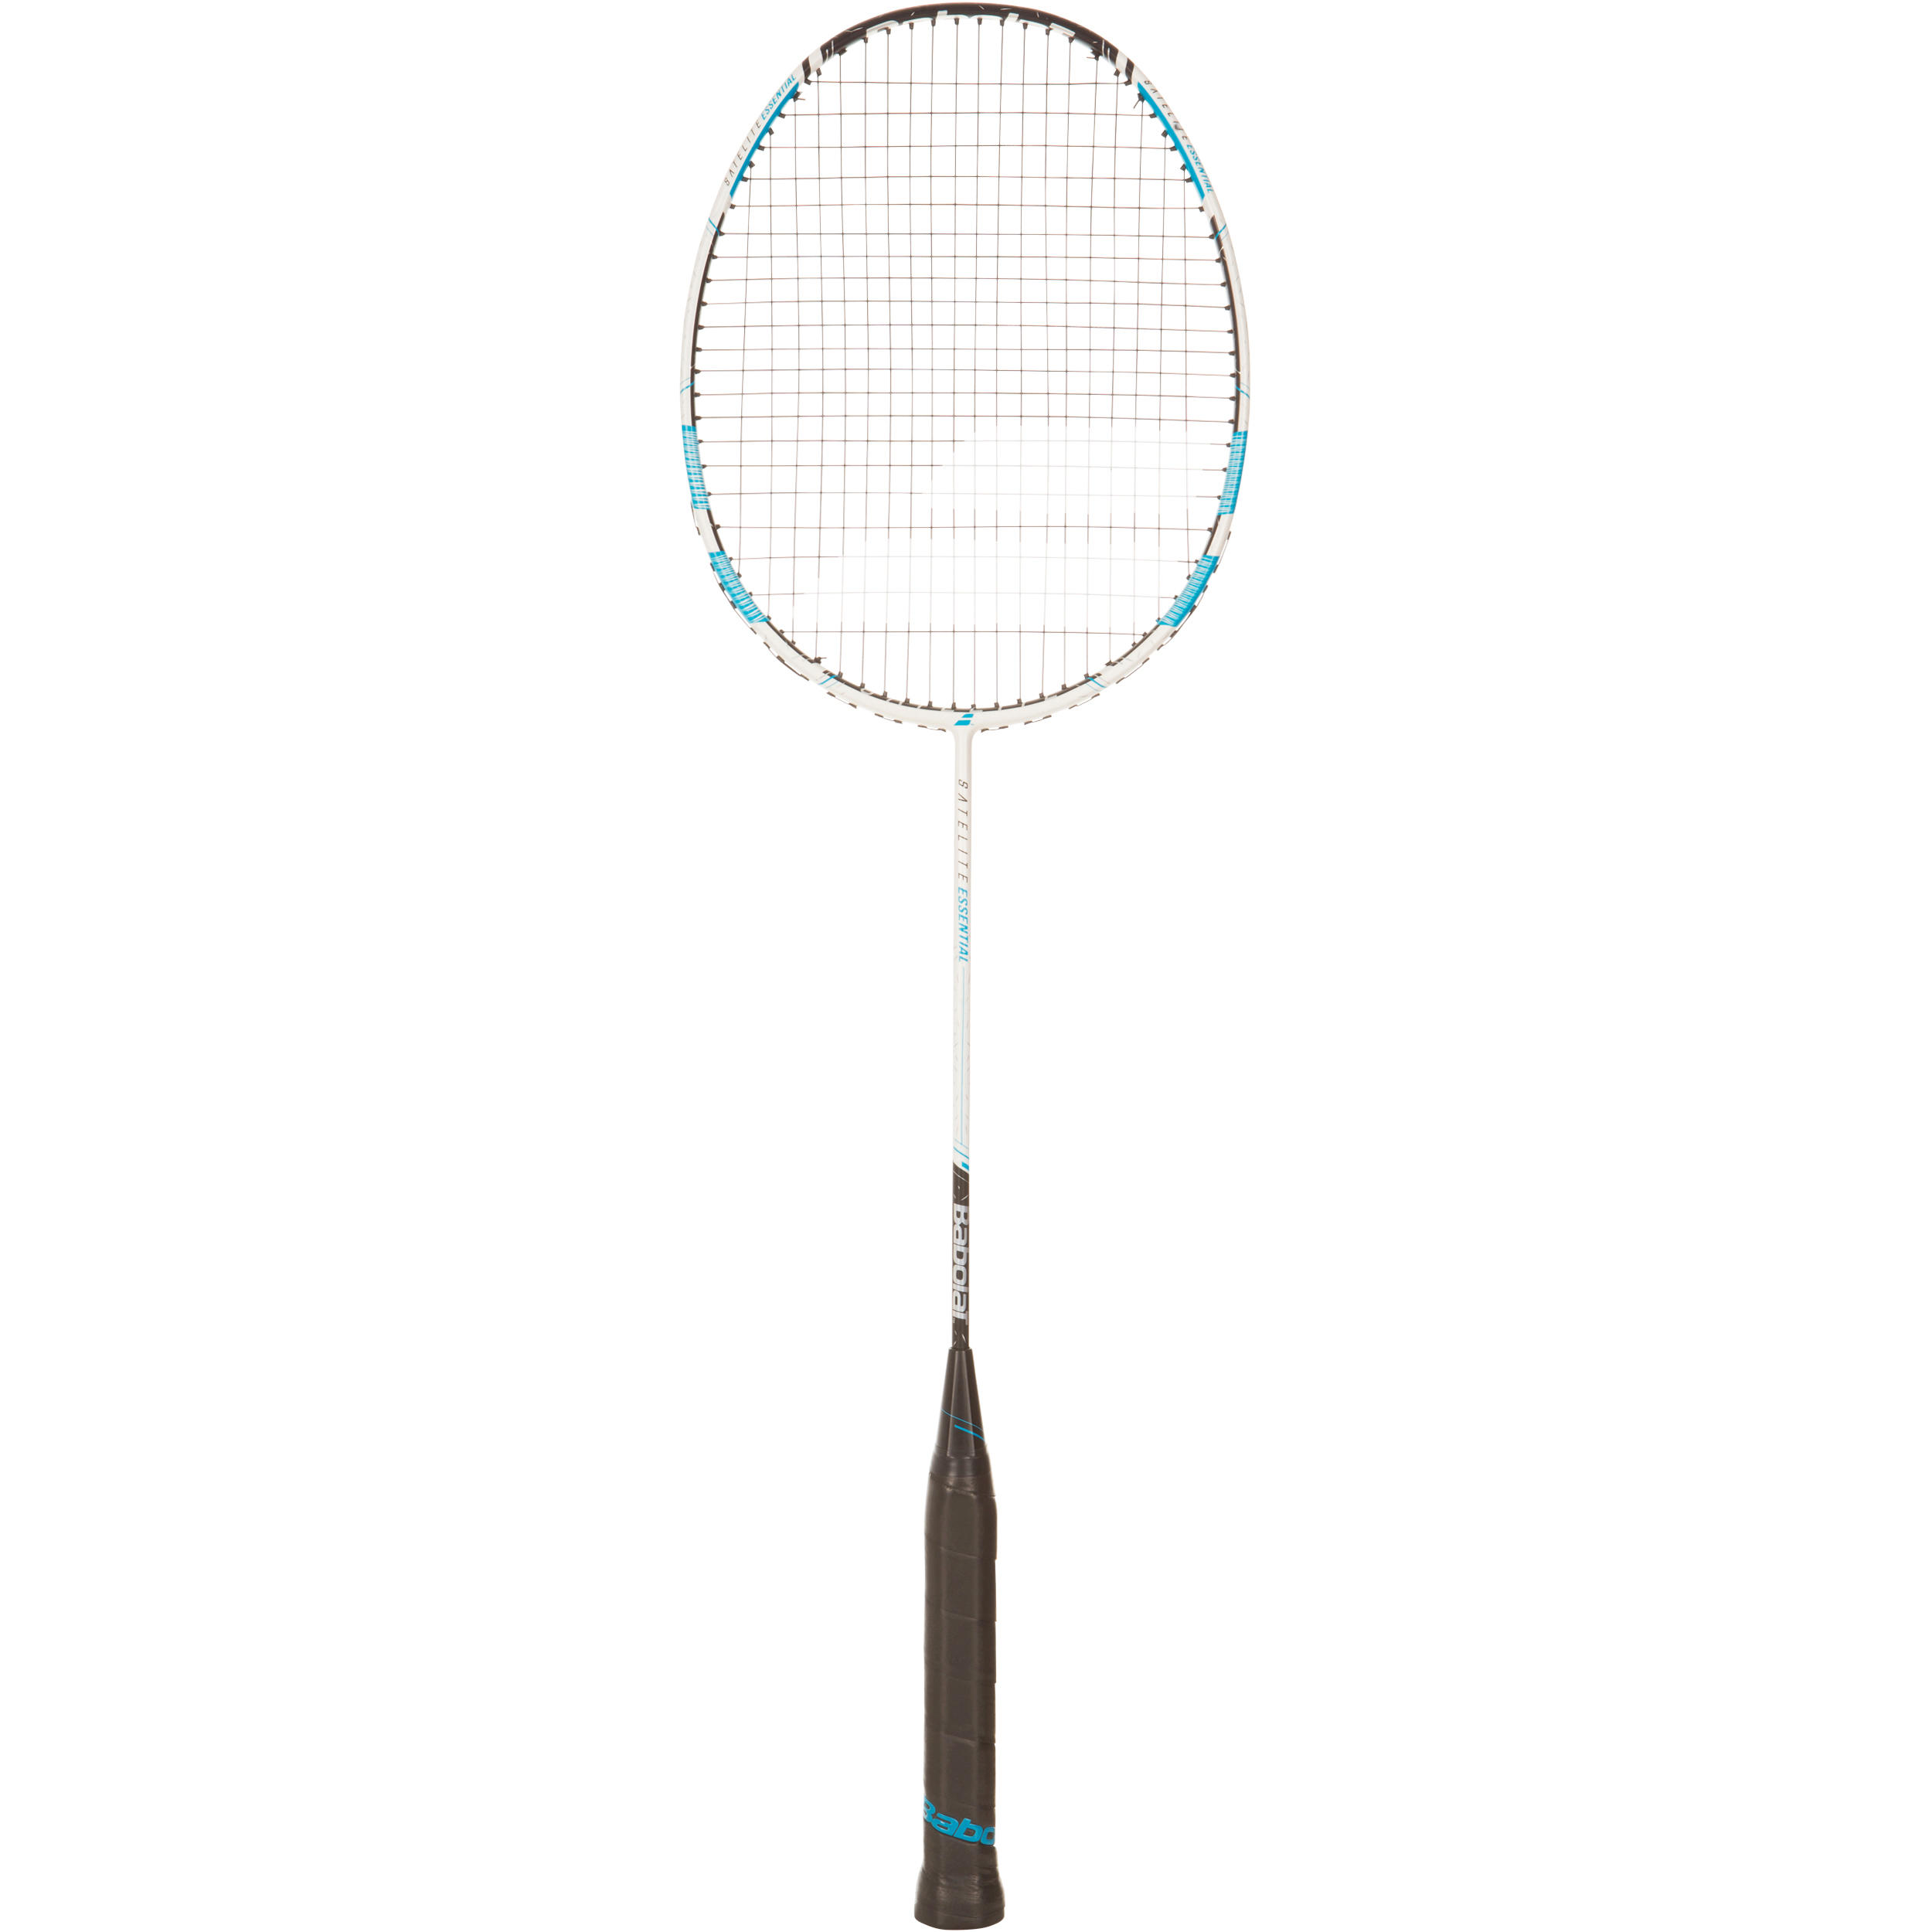 Babolat Badmintonracket Satelite Essentiel wit/blauw